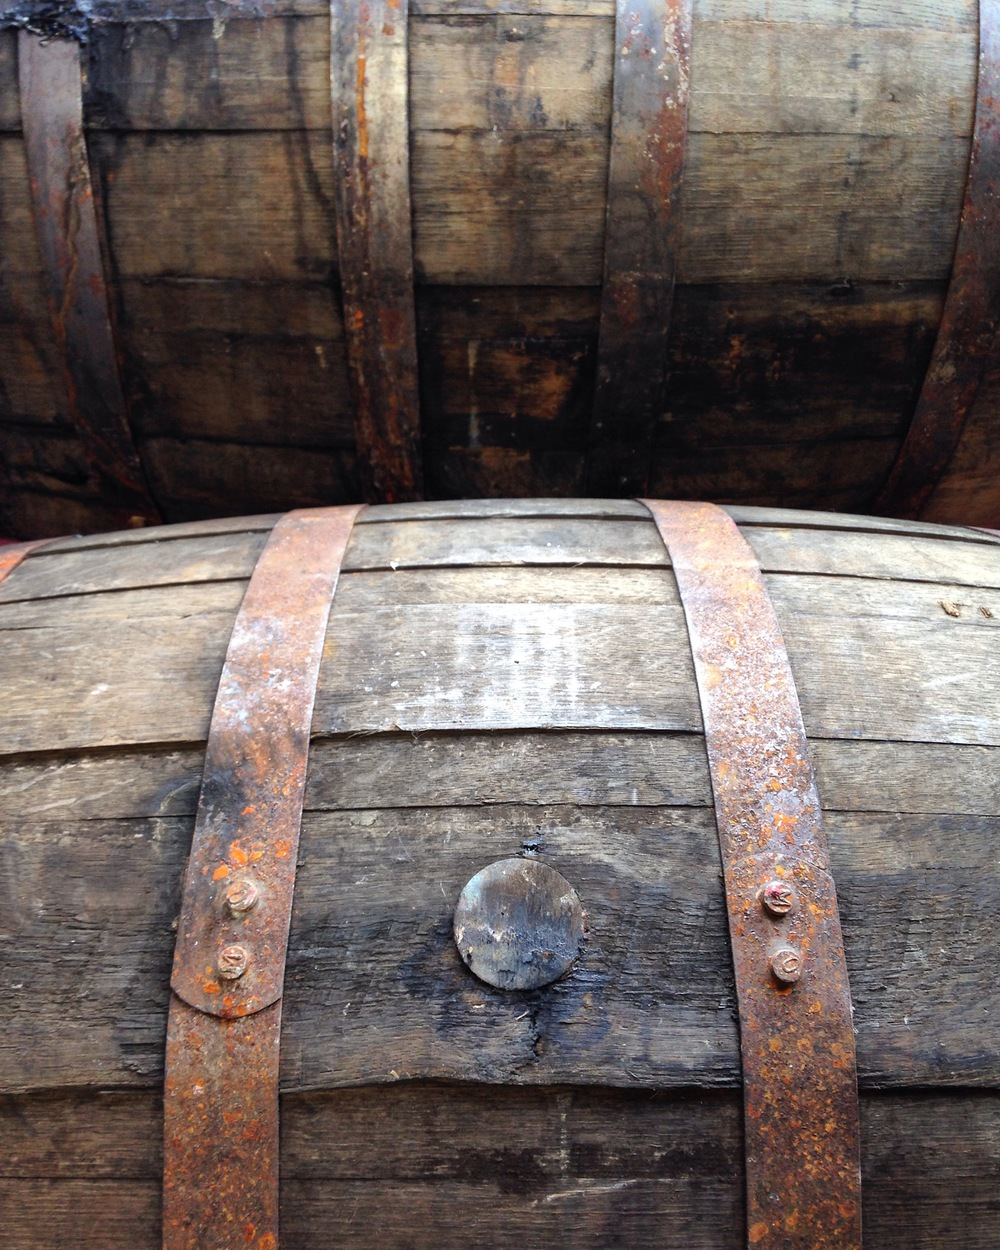 Before aging Palehorse, these barrels housed Breckenridge Bourbon in Colorado for many years.